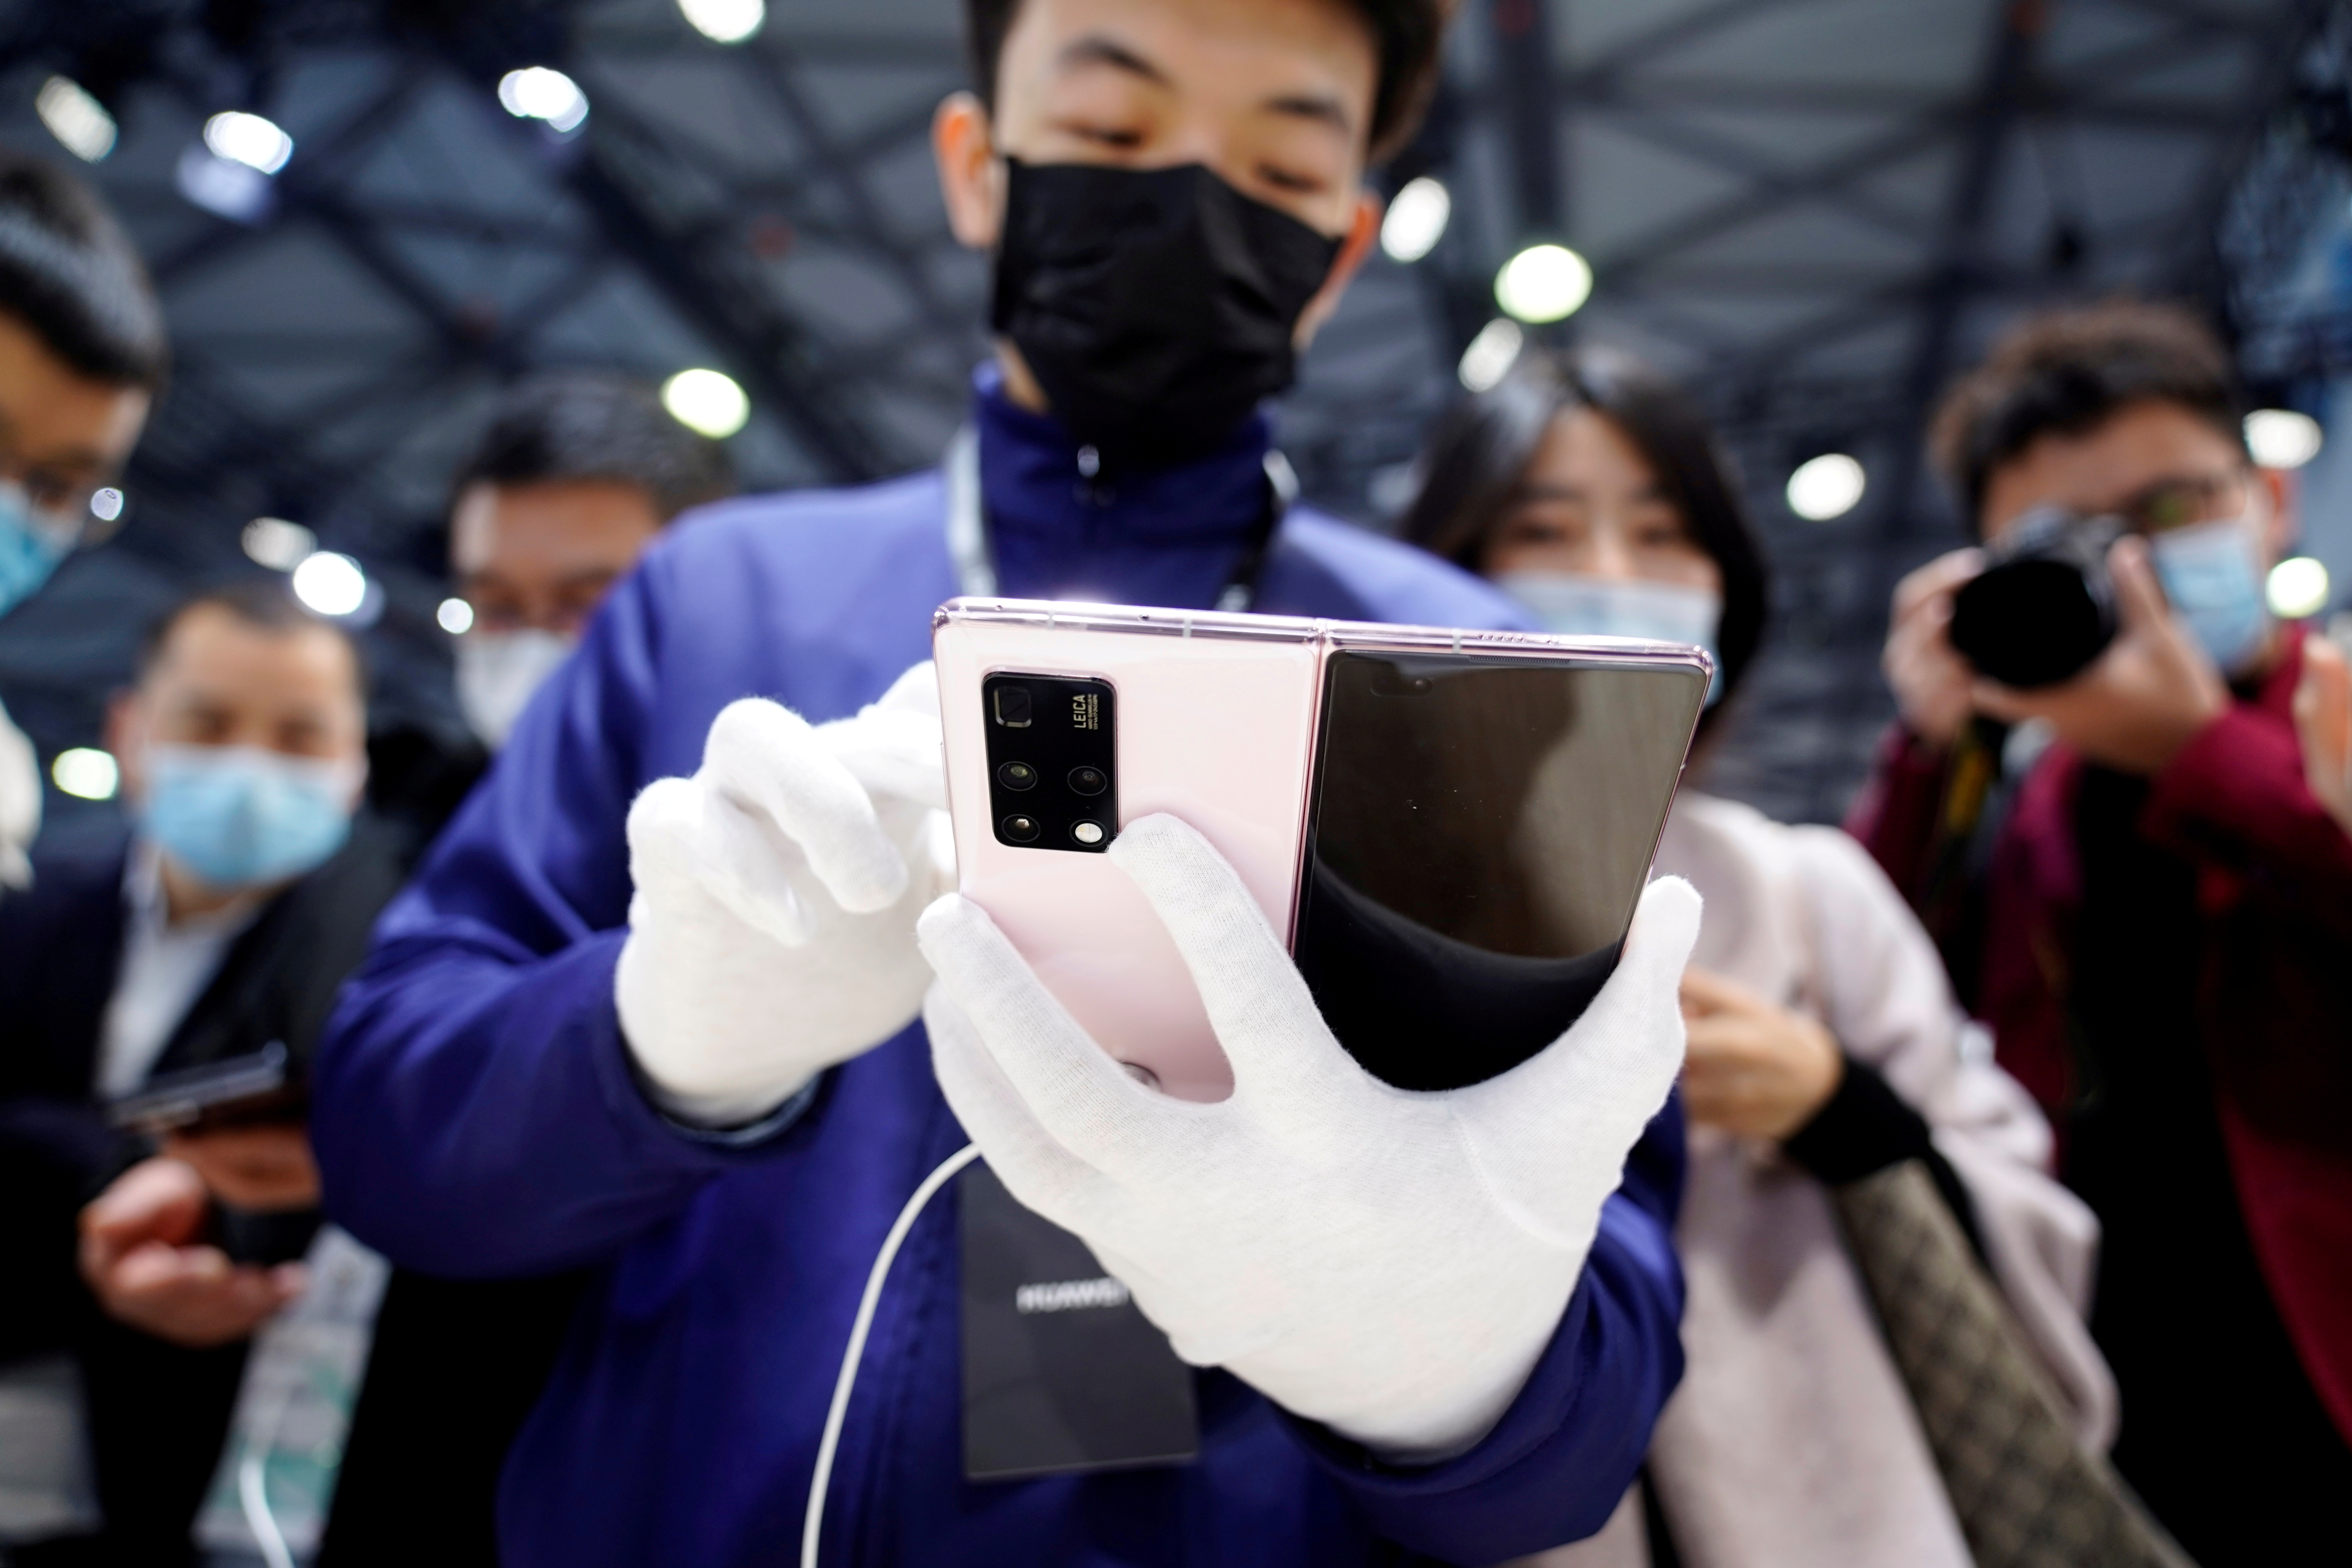 A staff member holds Huawei's new 5G Mate X2 foldable phone at the Mobile World Congress (MWC) in Shanghai, China February 23, 2021. REUTERS/Aly Song/File Photo